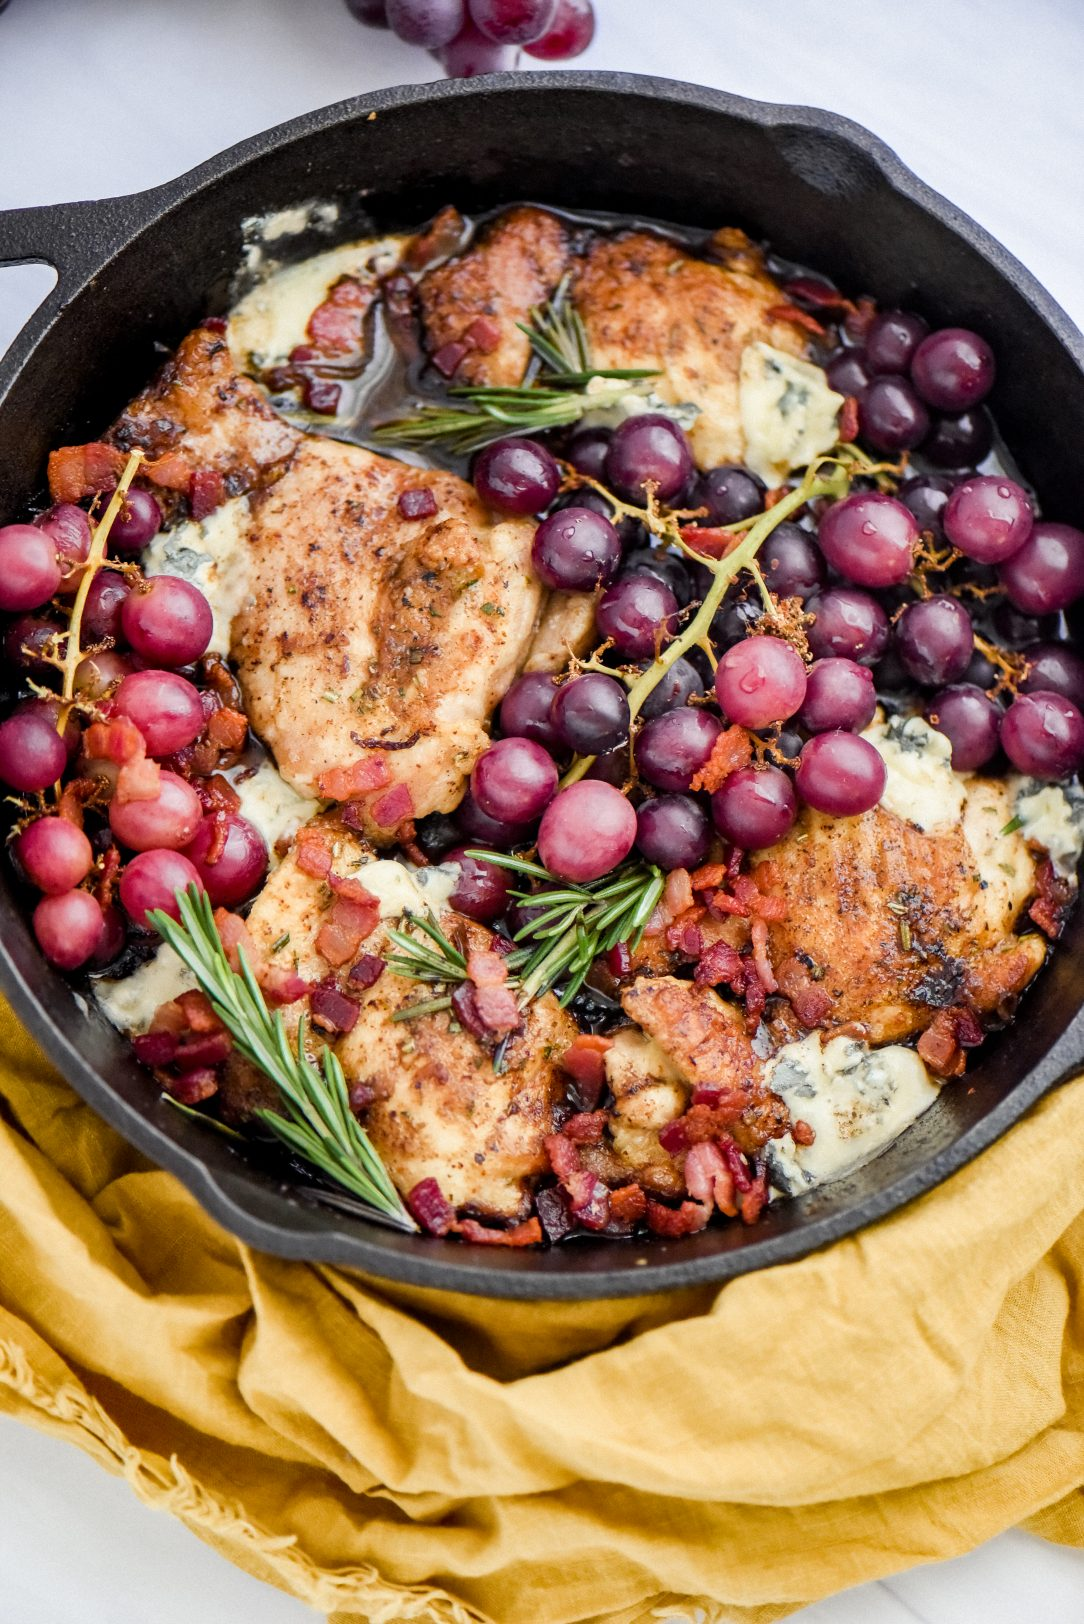 chicken, grapes, and cheese in skillet